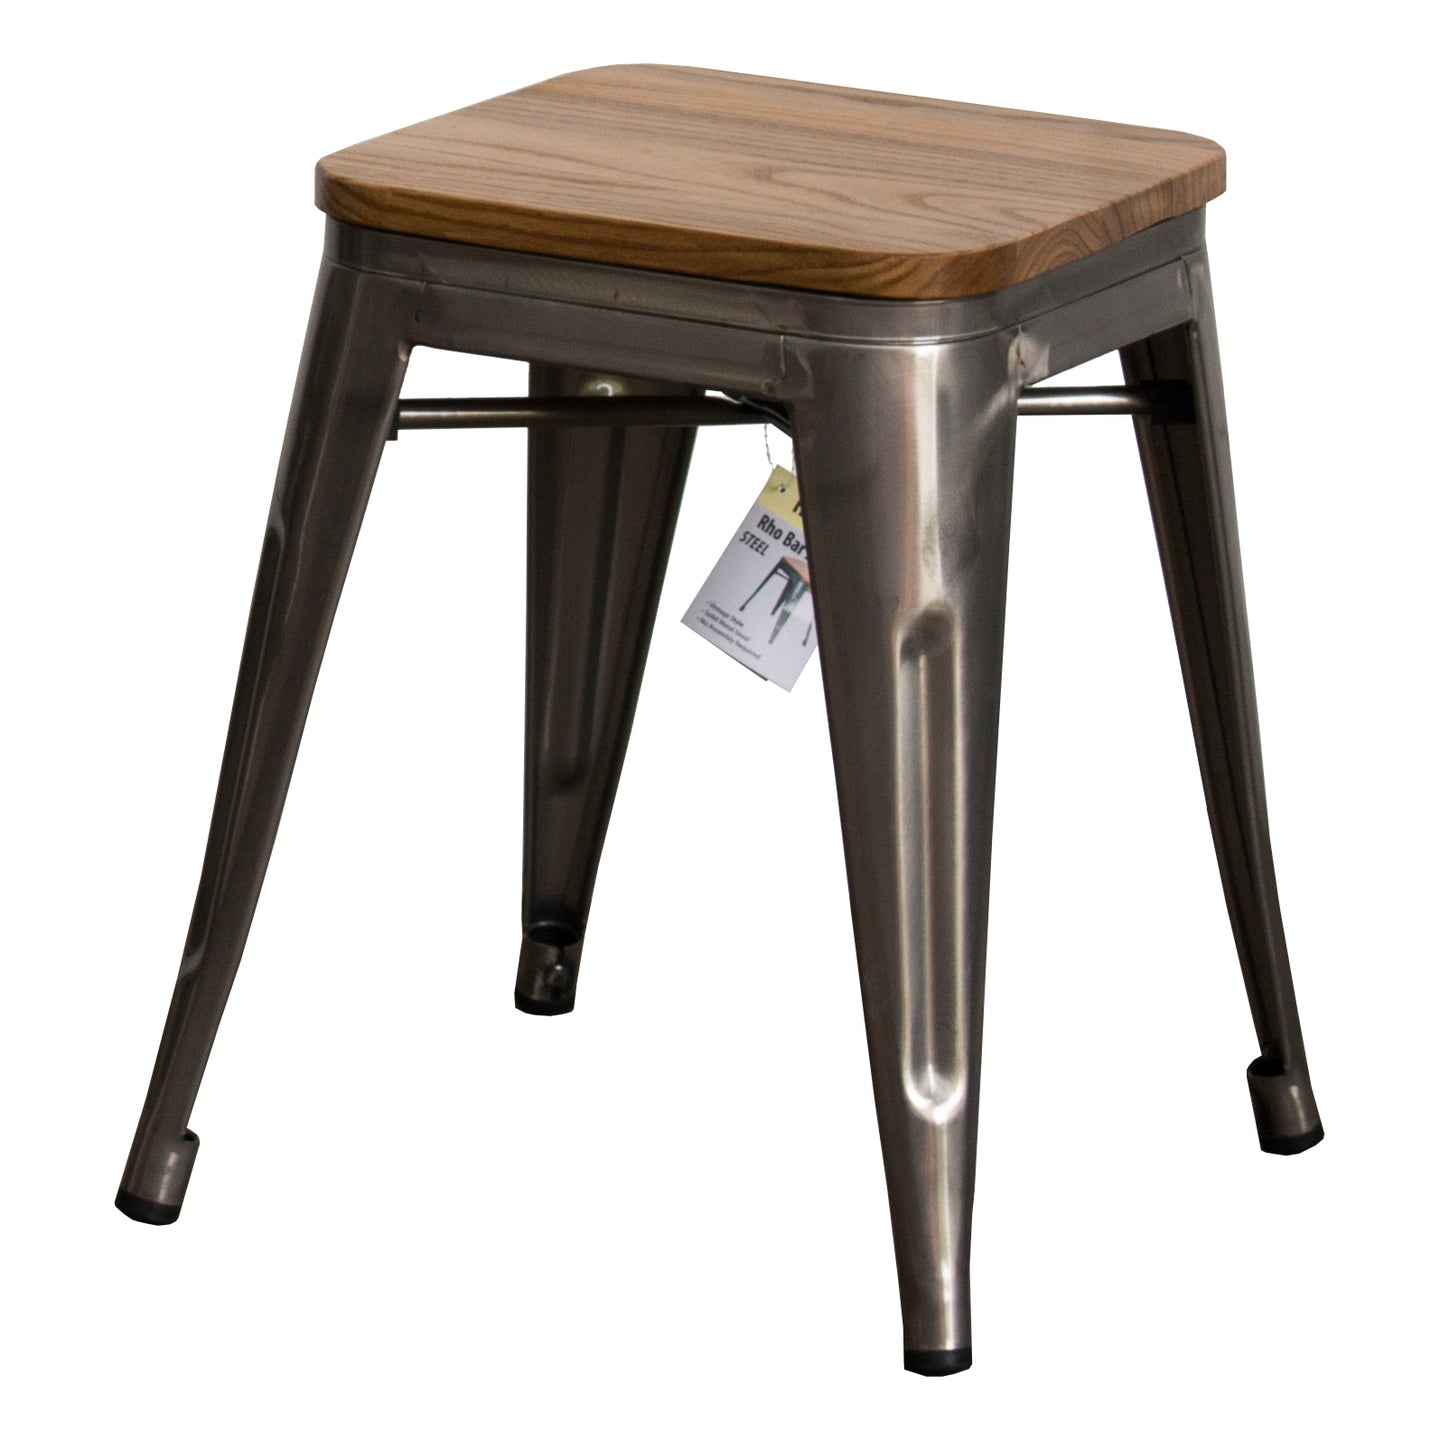 Rho Bar Stool - Steel